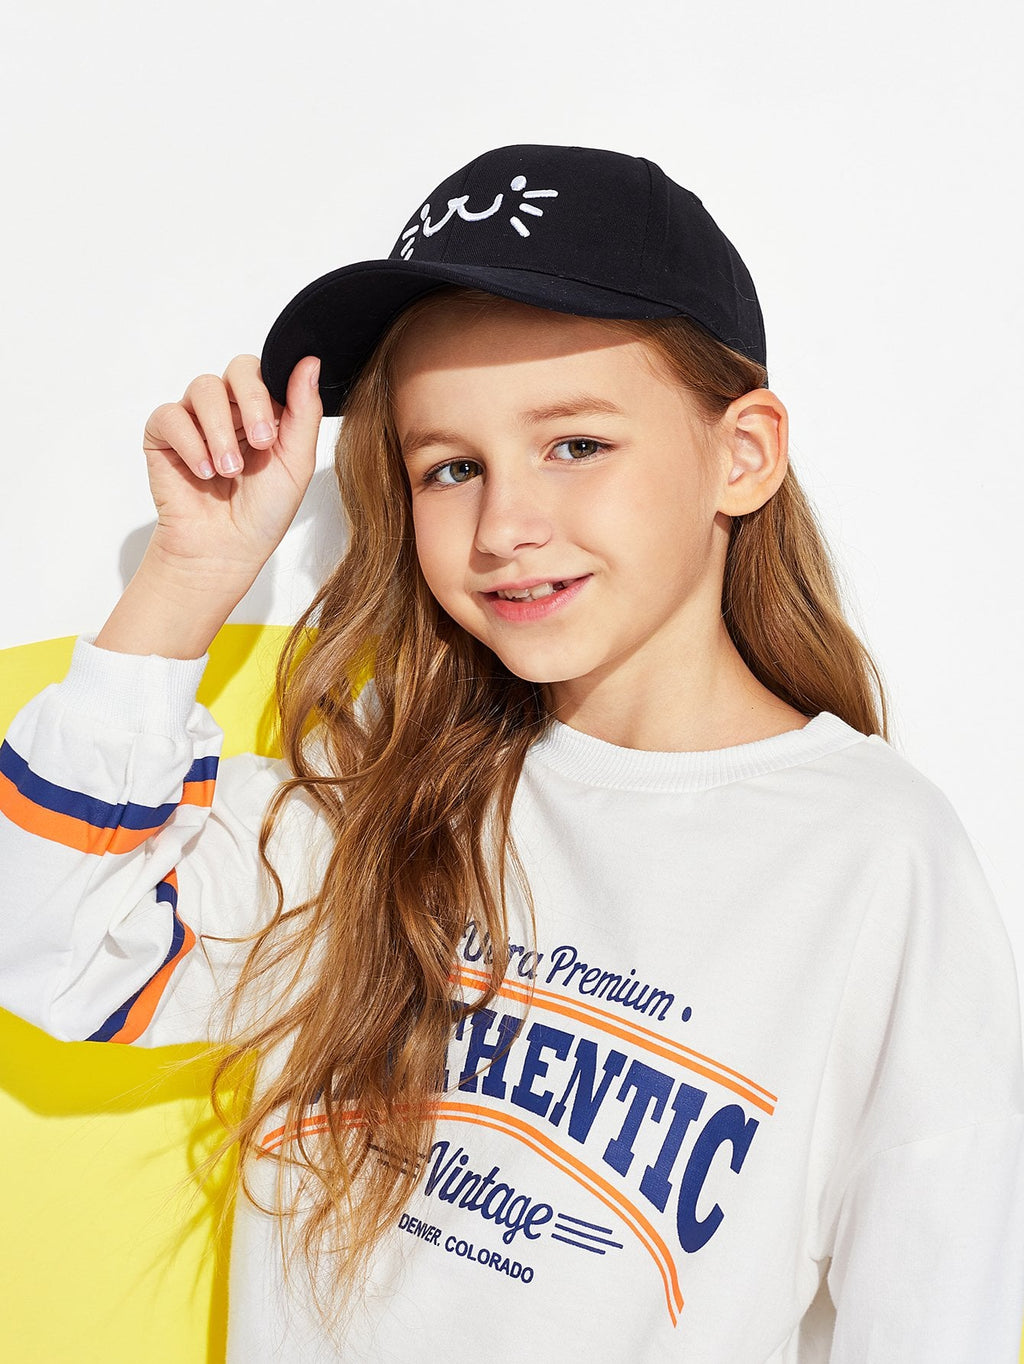 Kids Caps - Boys Embroidery Baseball Cap